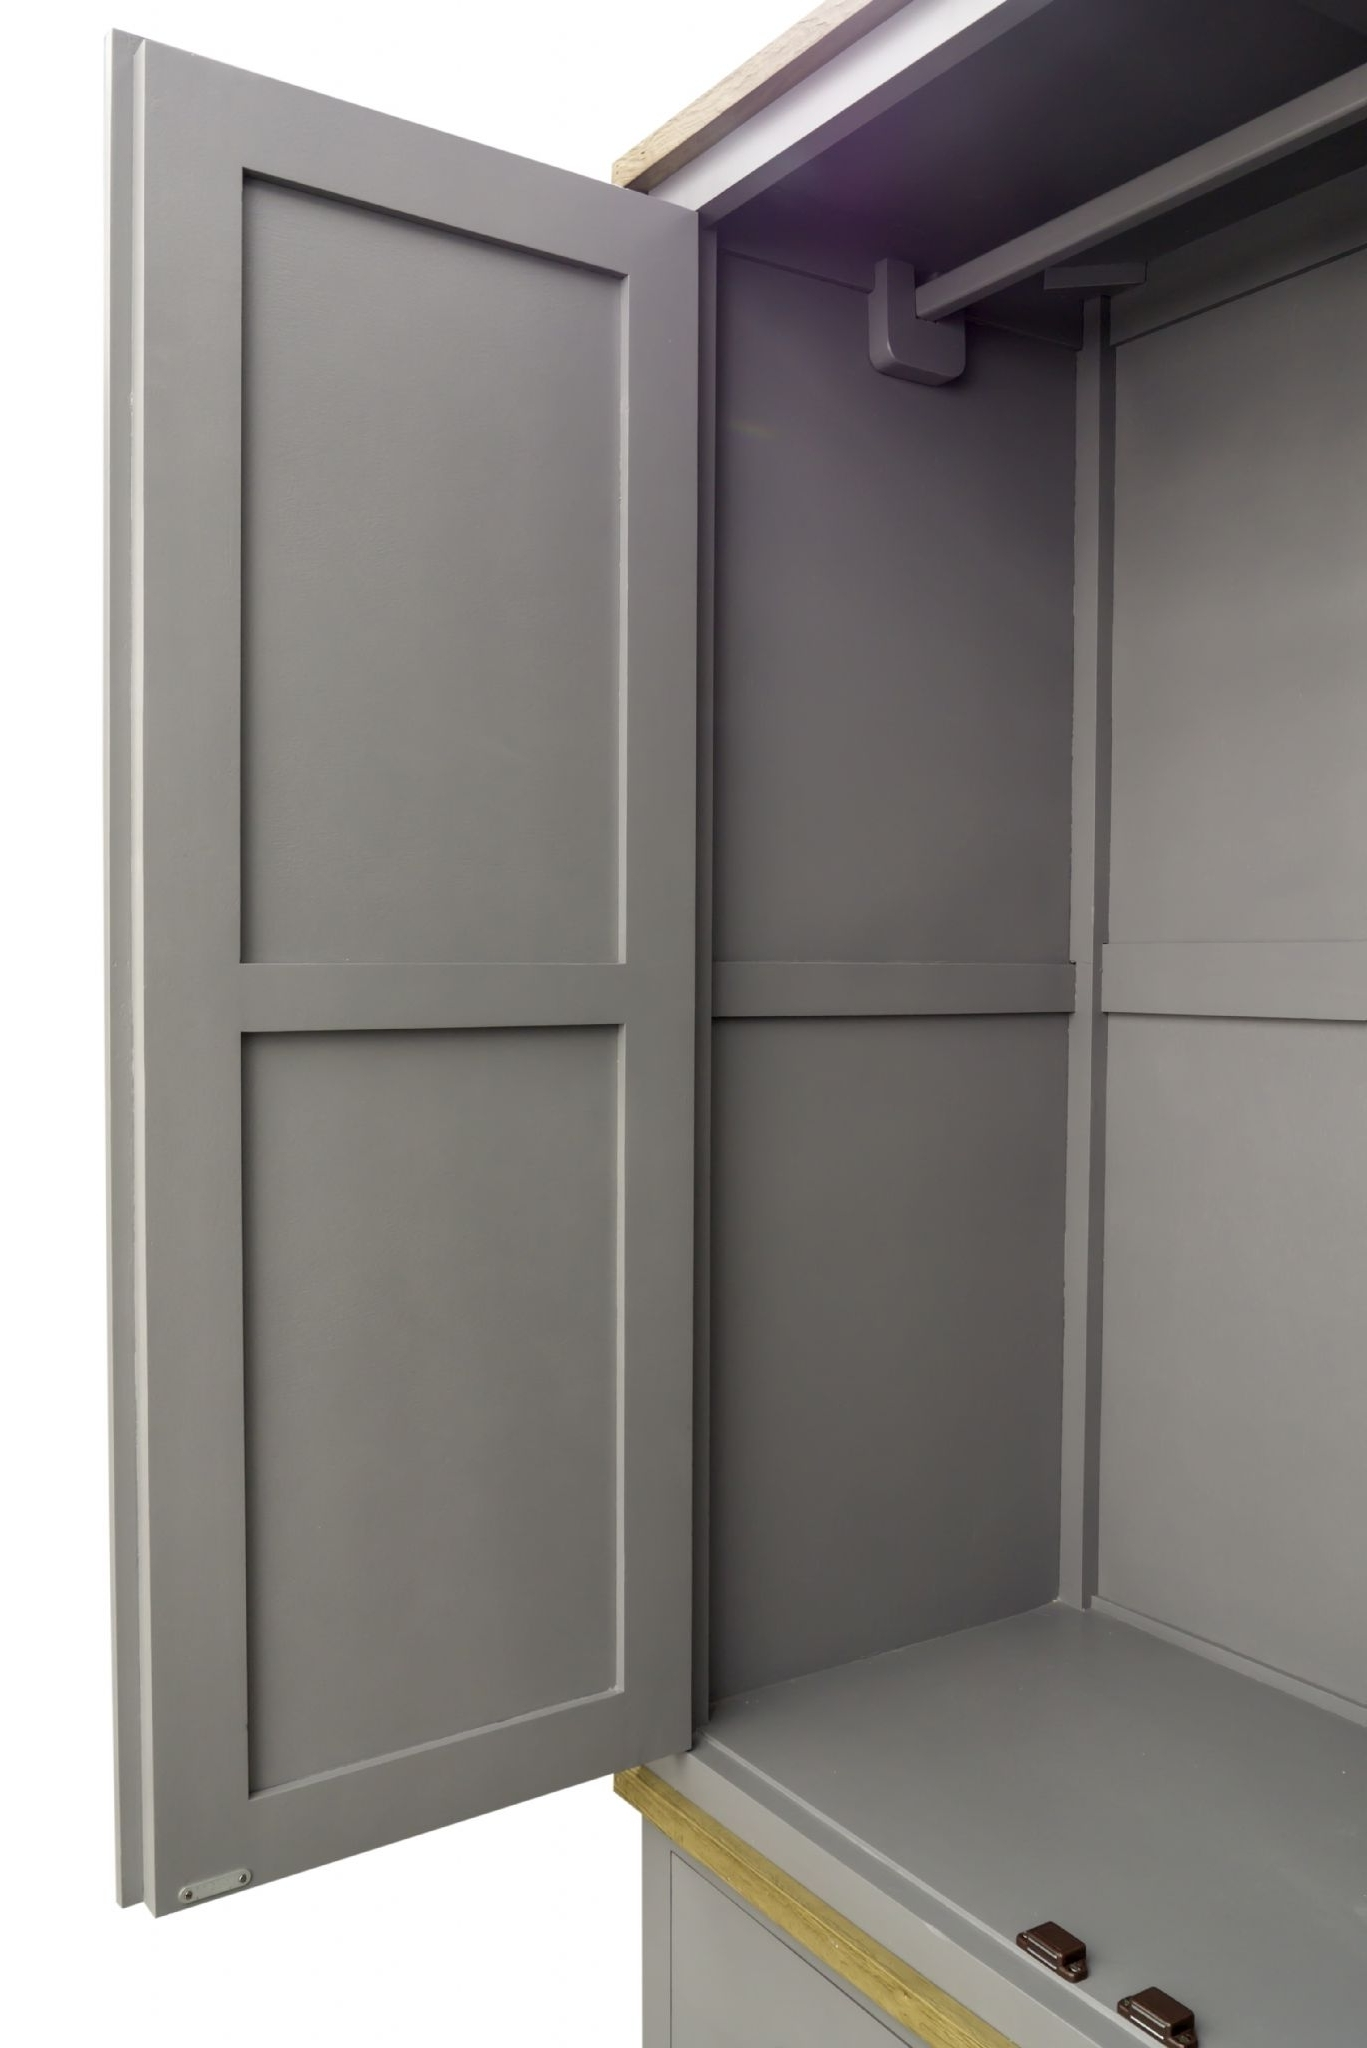 2018 Pine Shabby Chic Storm Grey Double Wardrobe Within Shabby Chic Pine Wardrobes (View 1 of 15)